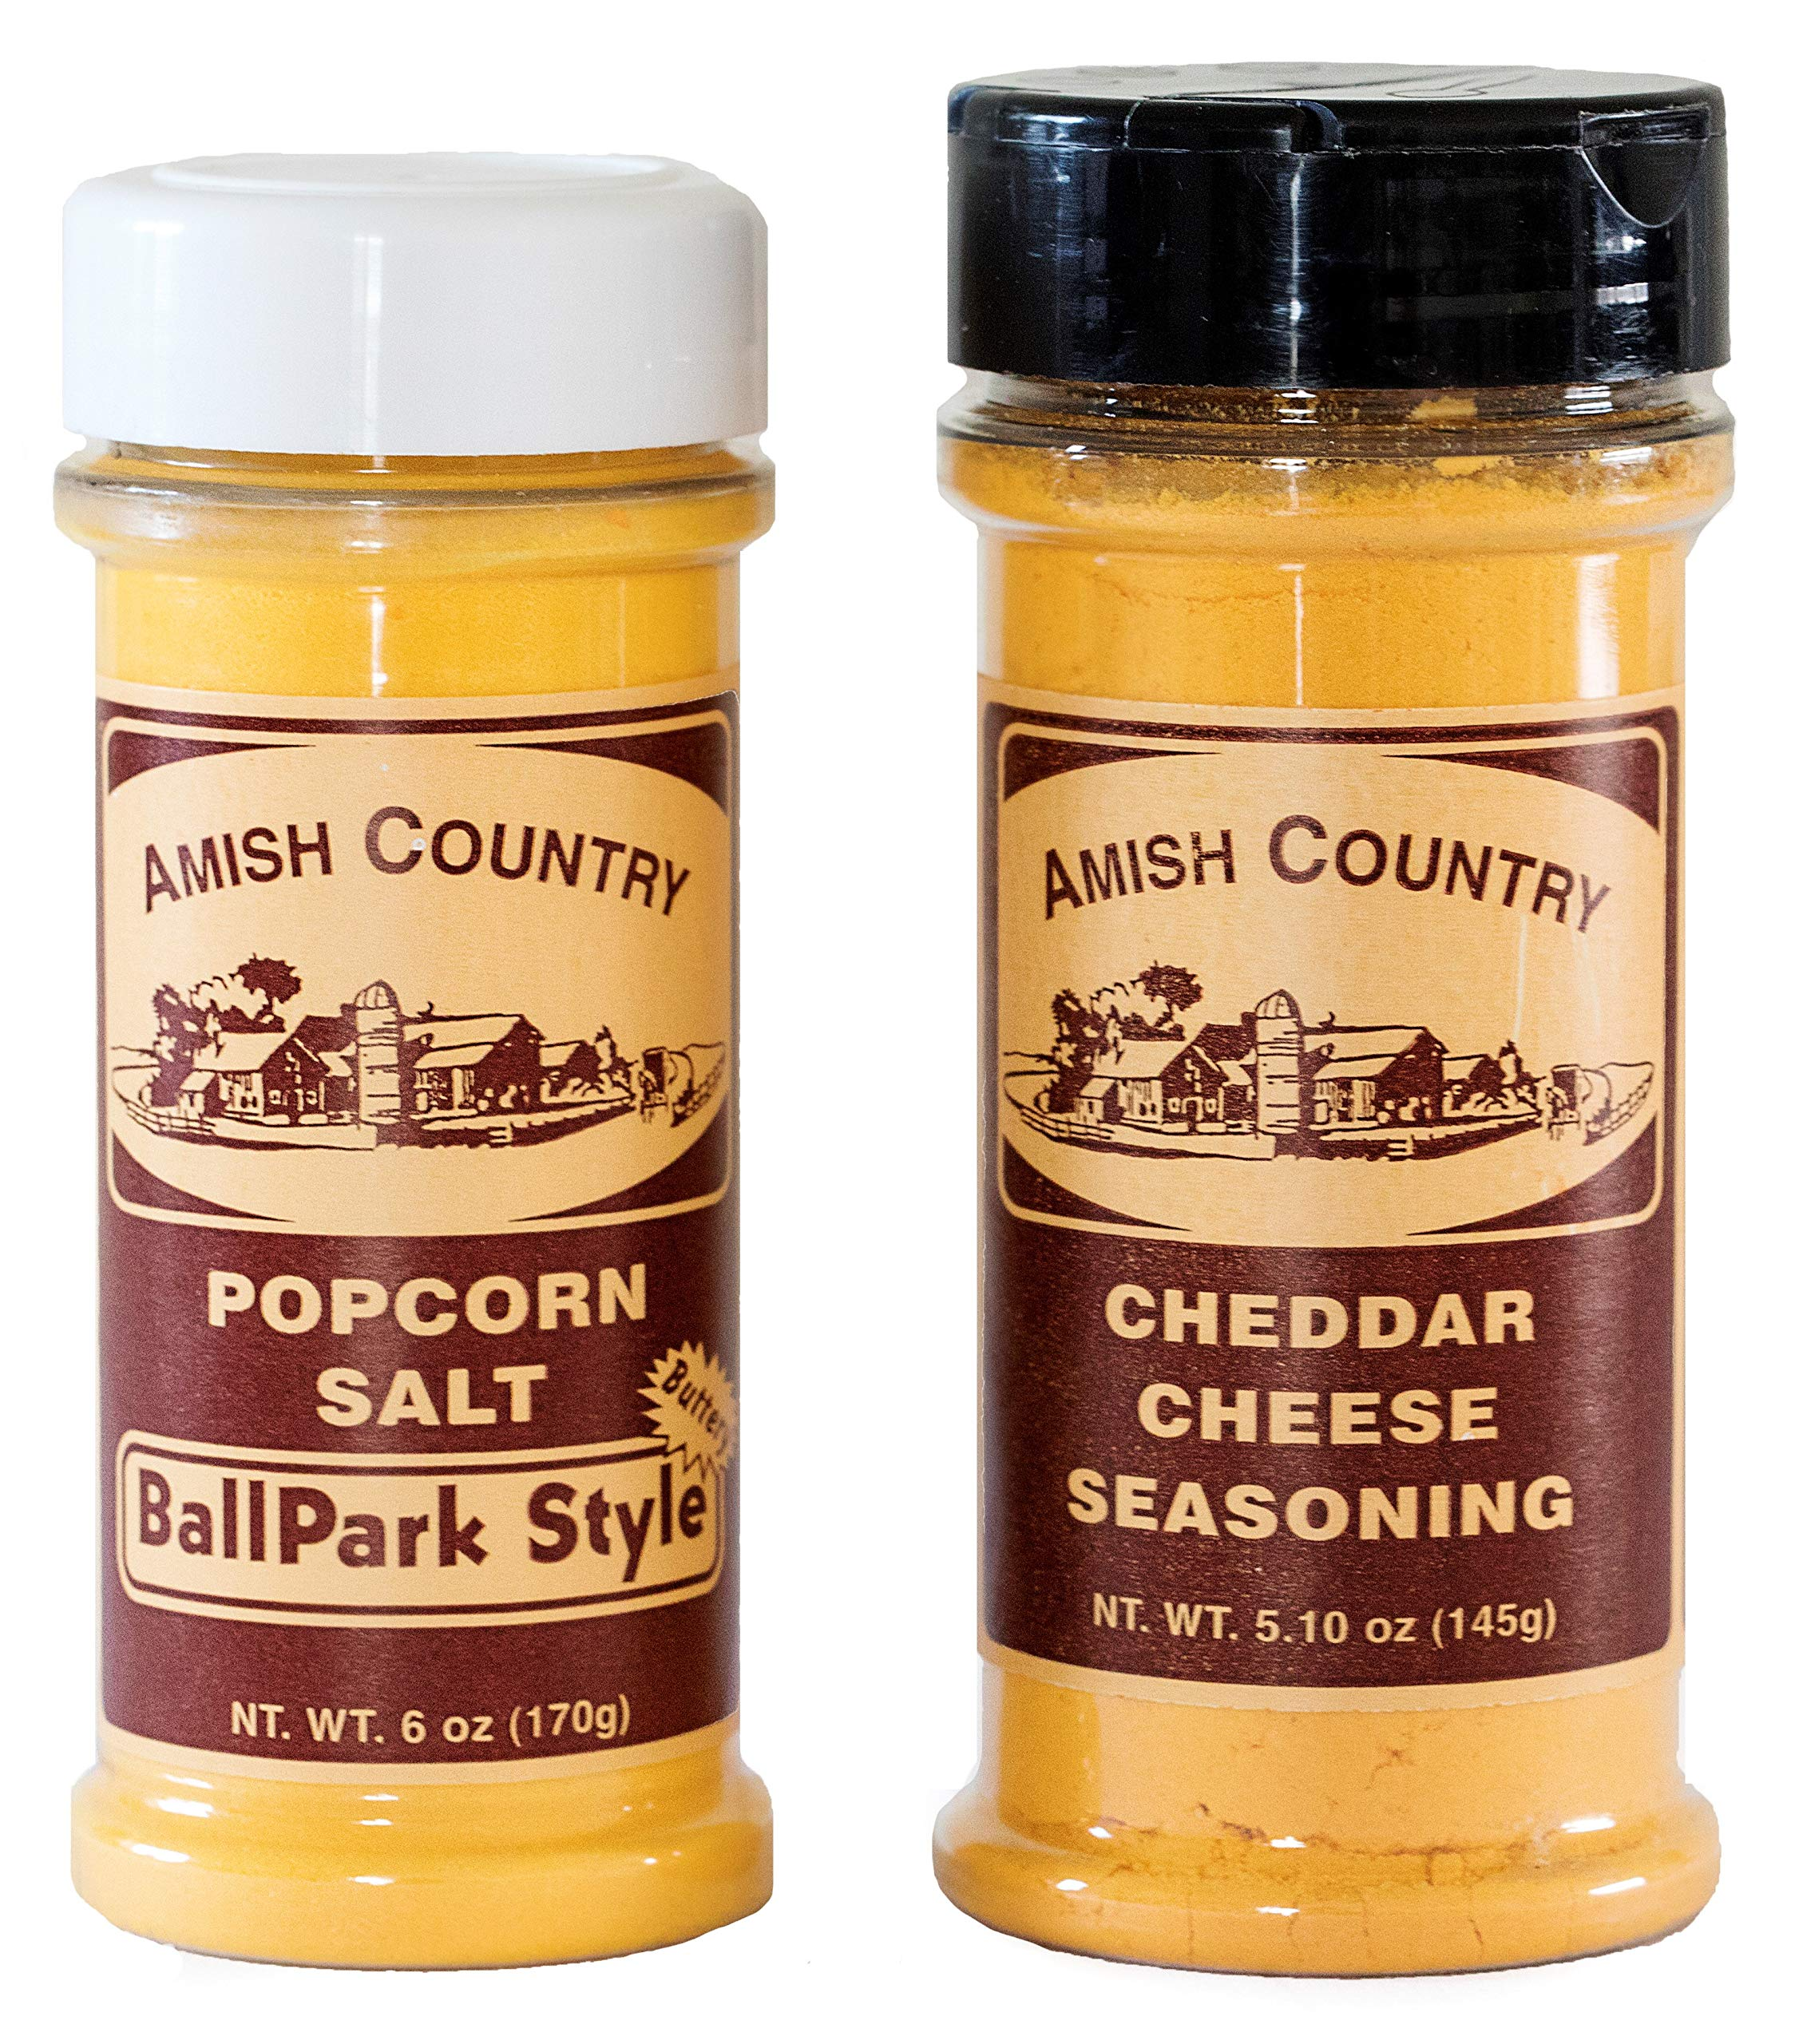 Amish Country Popcorn - BallPark Style ButterSalt (6 Oz) & Cheddar Cheese (5.1 Oz) Popcorn Seasoning - Old Fashioned with Recipe Guide